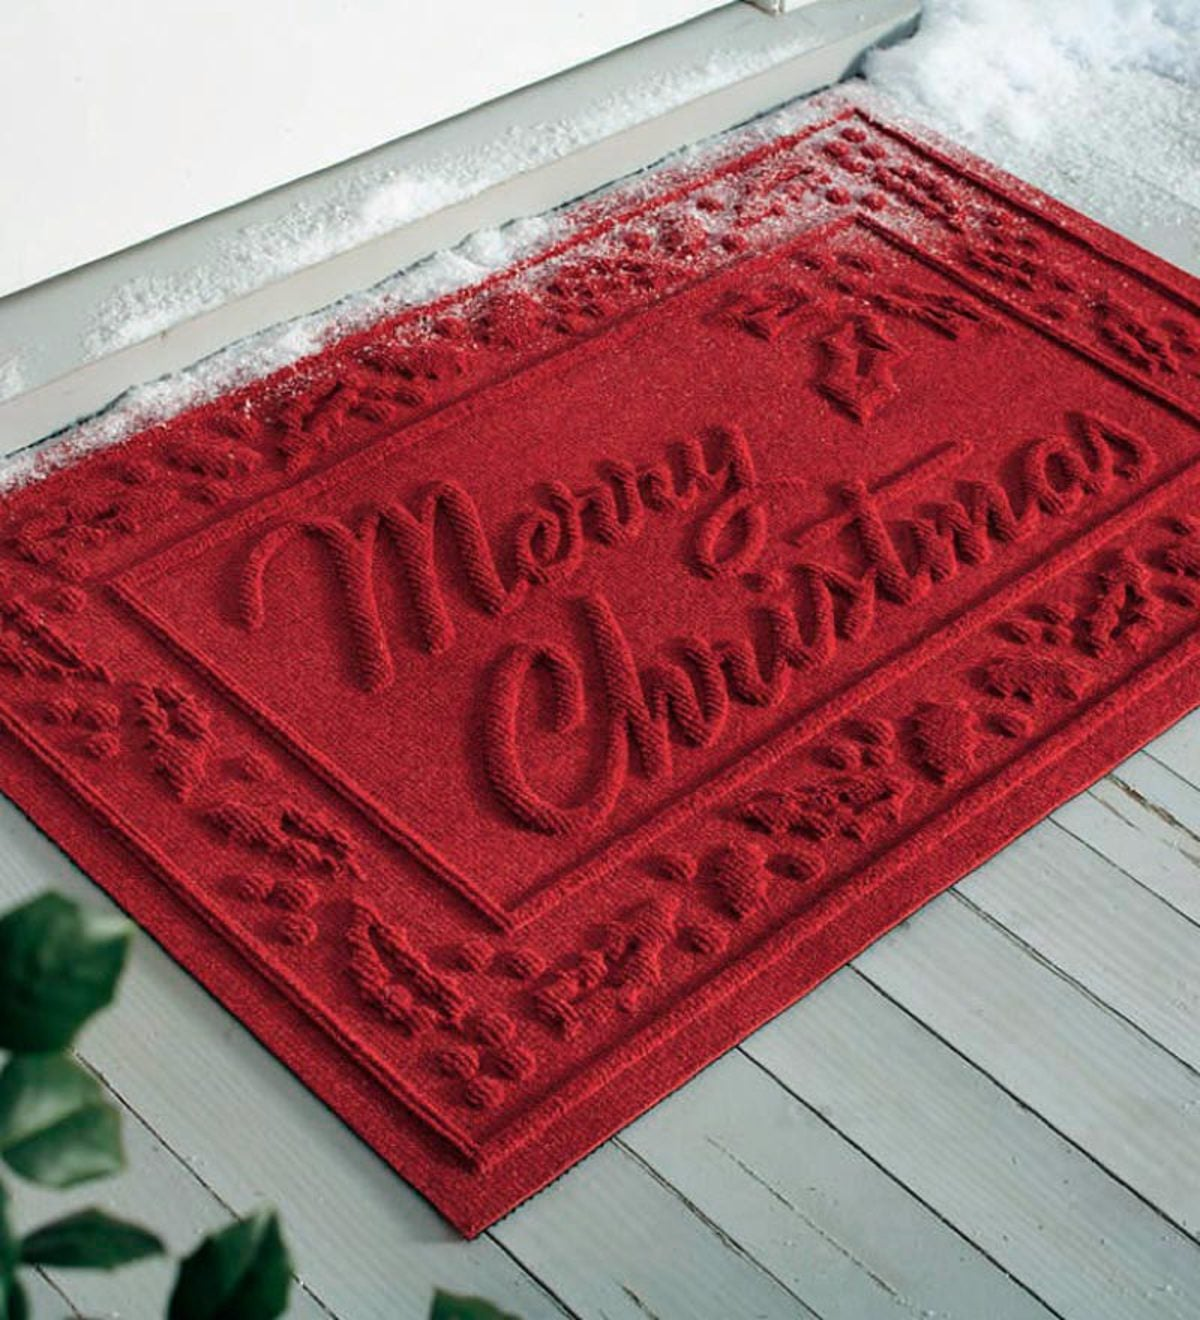 Waterhog Merry Christmas Doormat, 2' x 3'